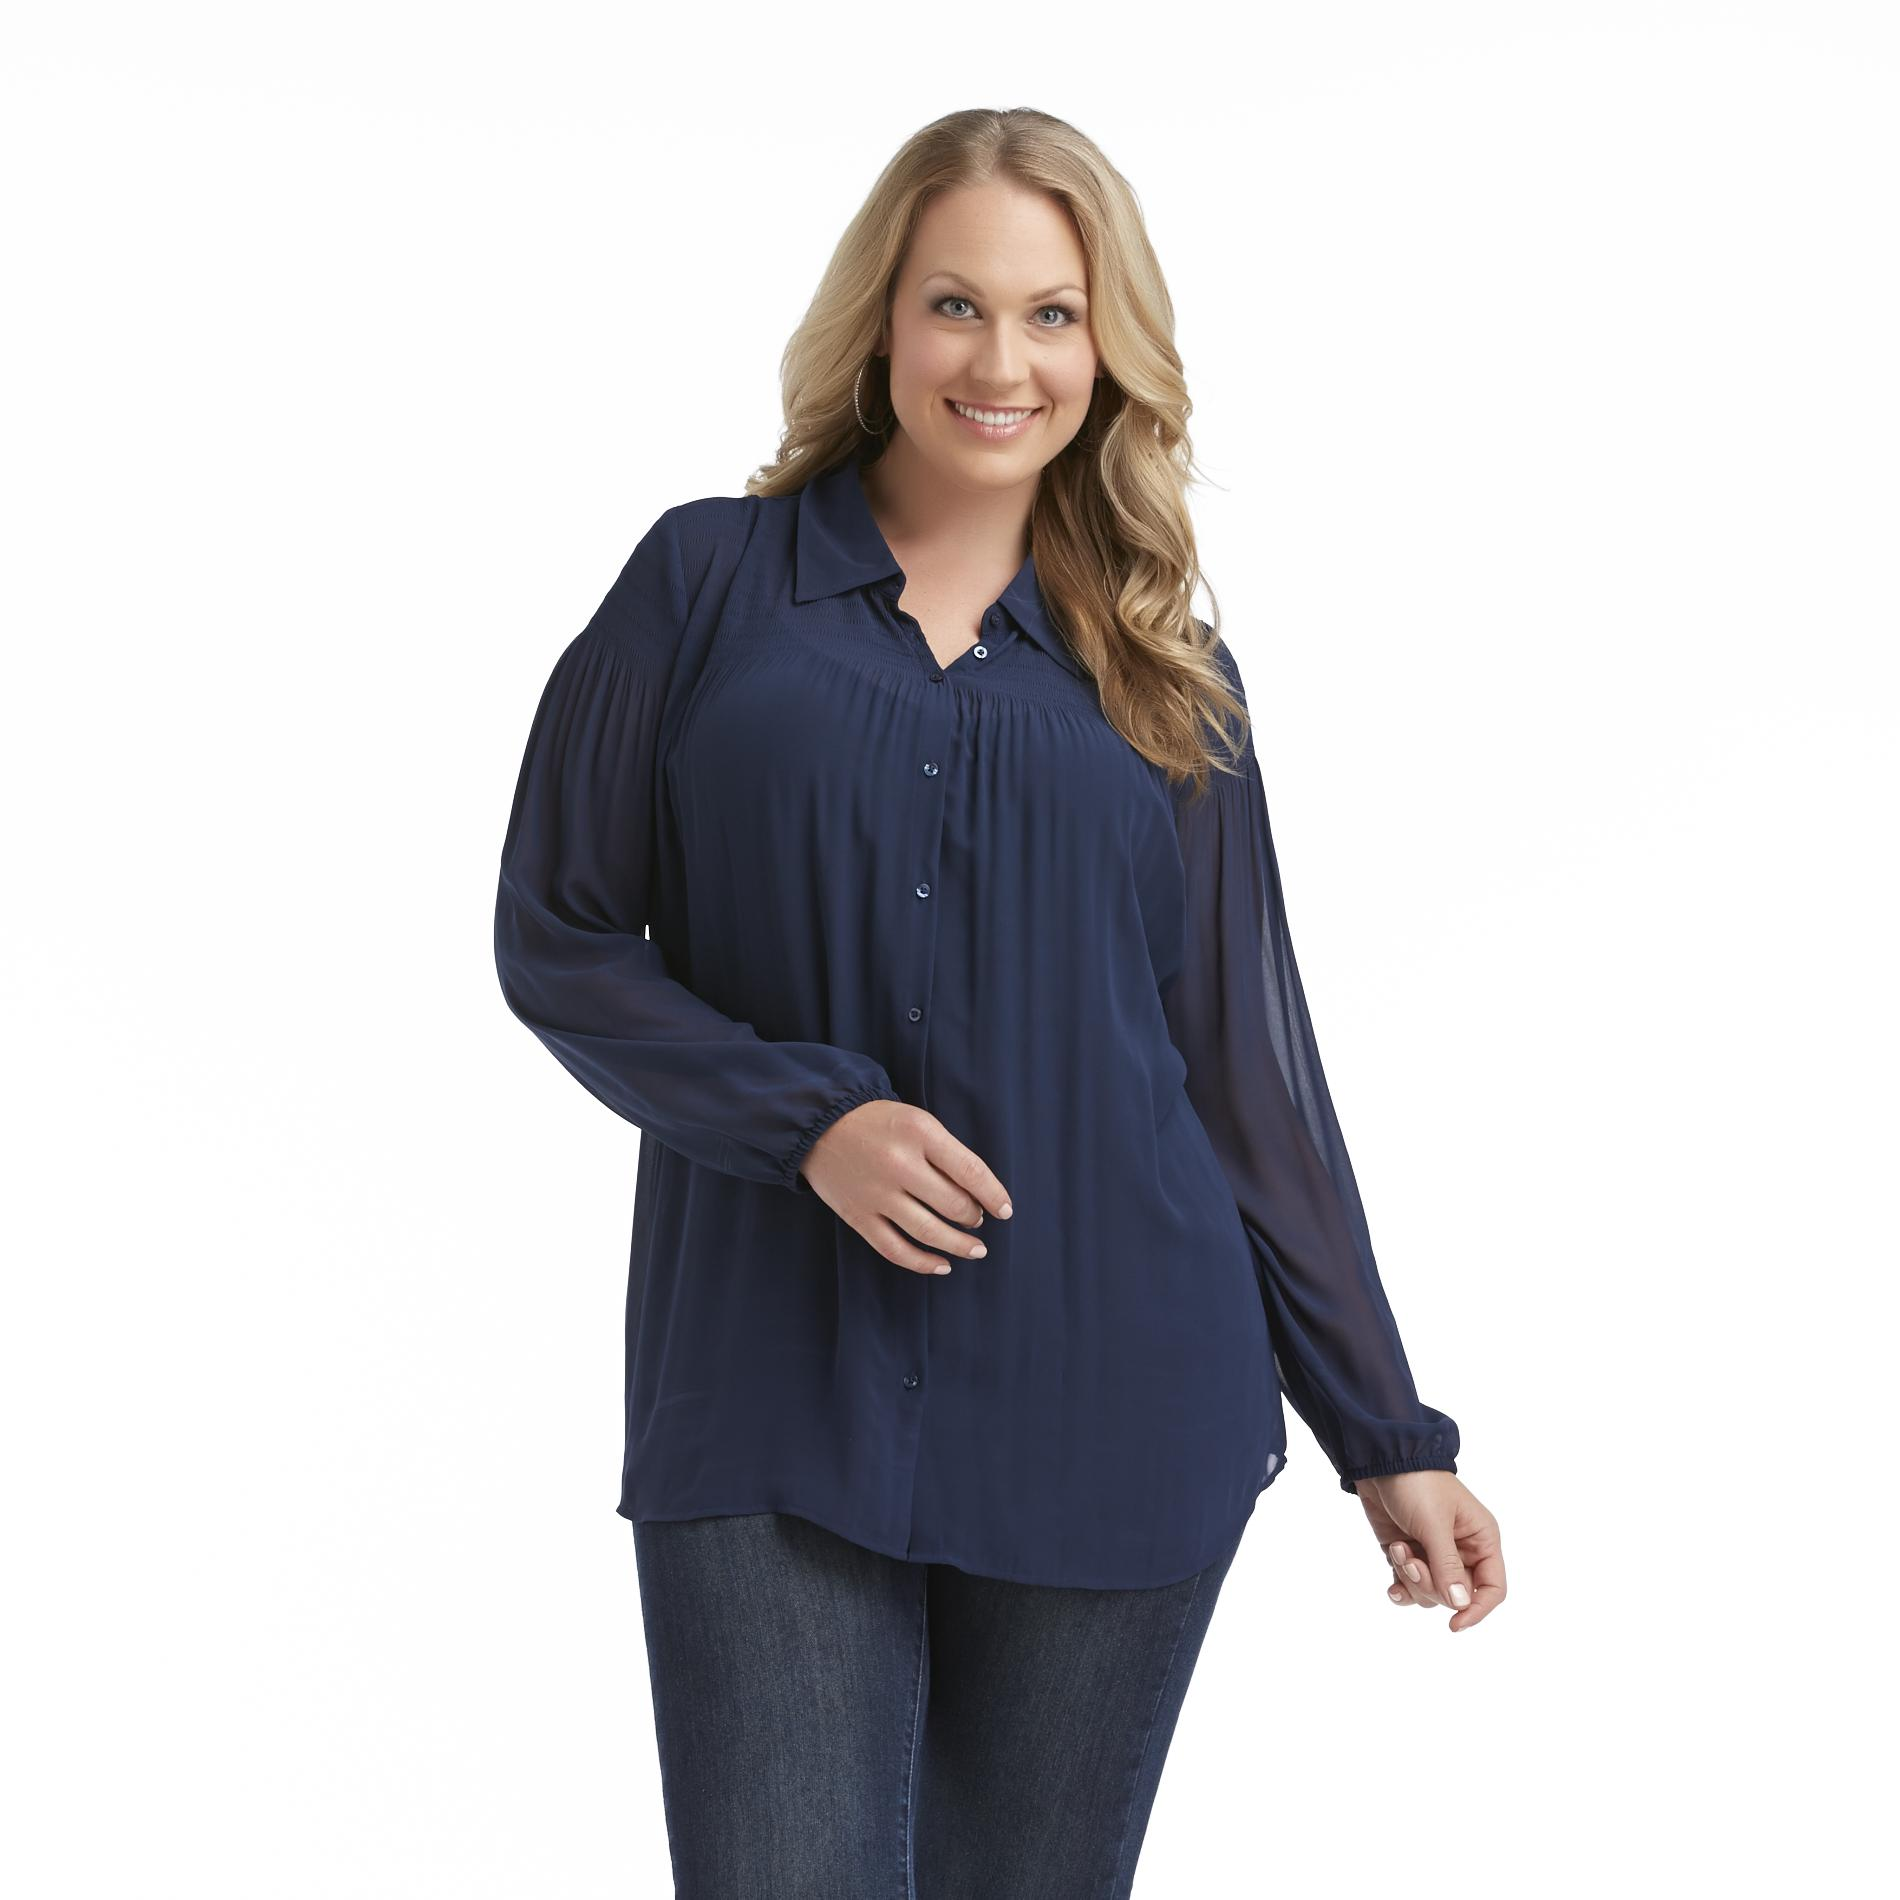 Love Your Style, Love Your Size Women's Plus Smocked Chiffon Blouse at Kmart.com